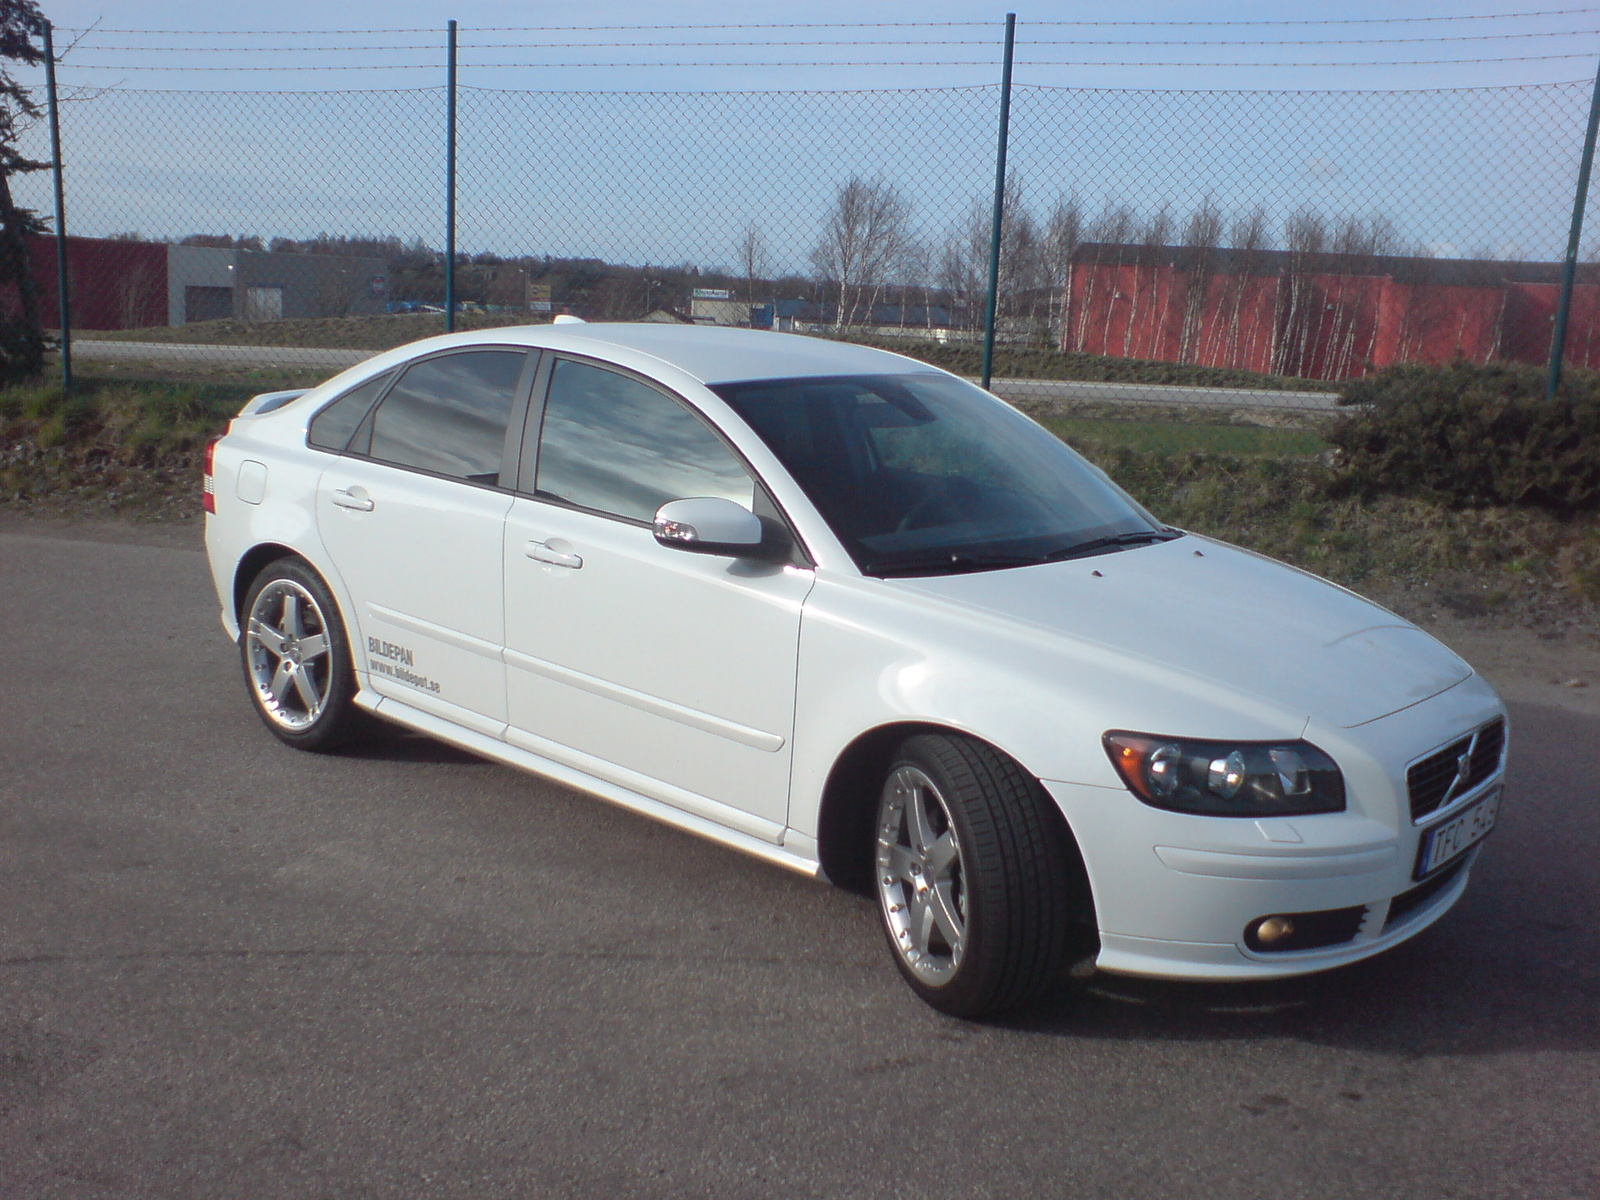 2007 volvo s40 t5 automatic related infomation. Black Bedroom Furniture Sets. Home Design Ideas